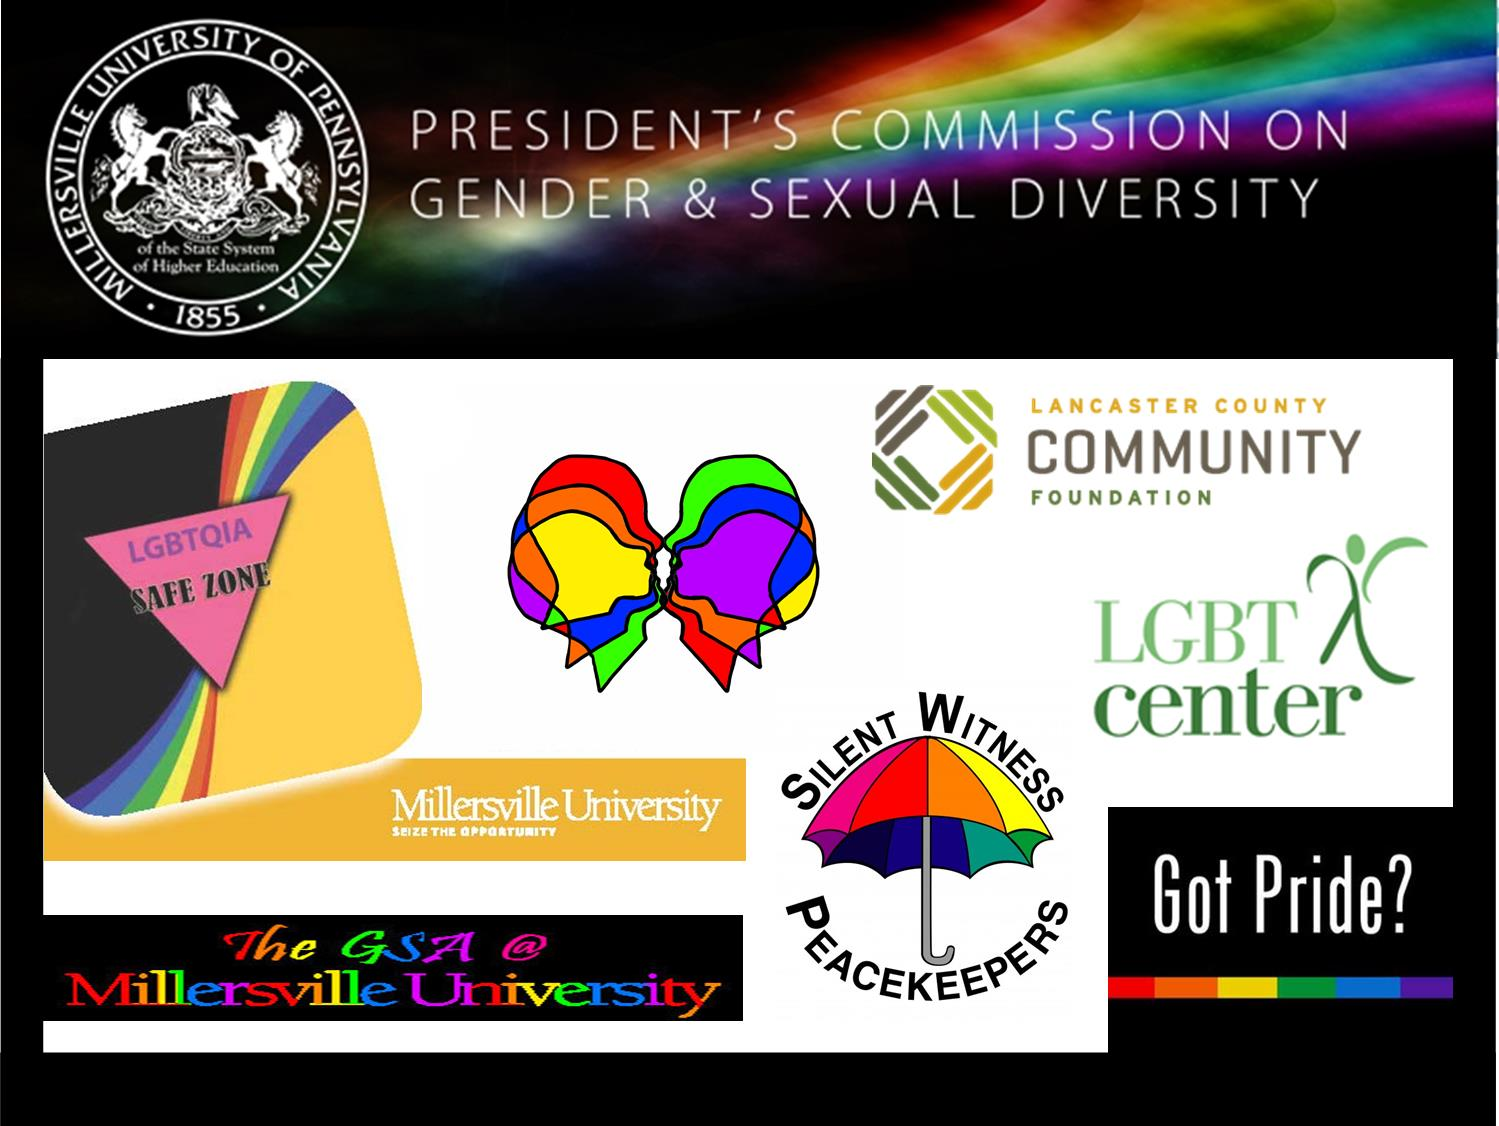 Sexuality and gender institute millersville